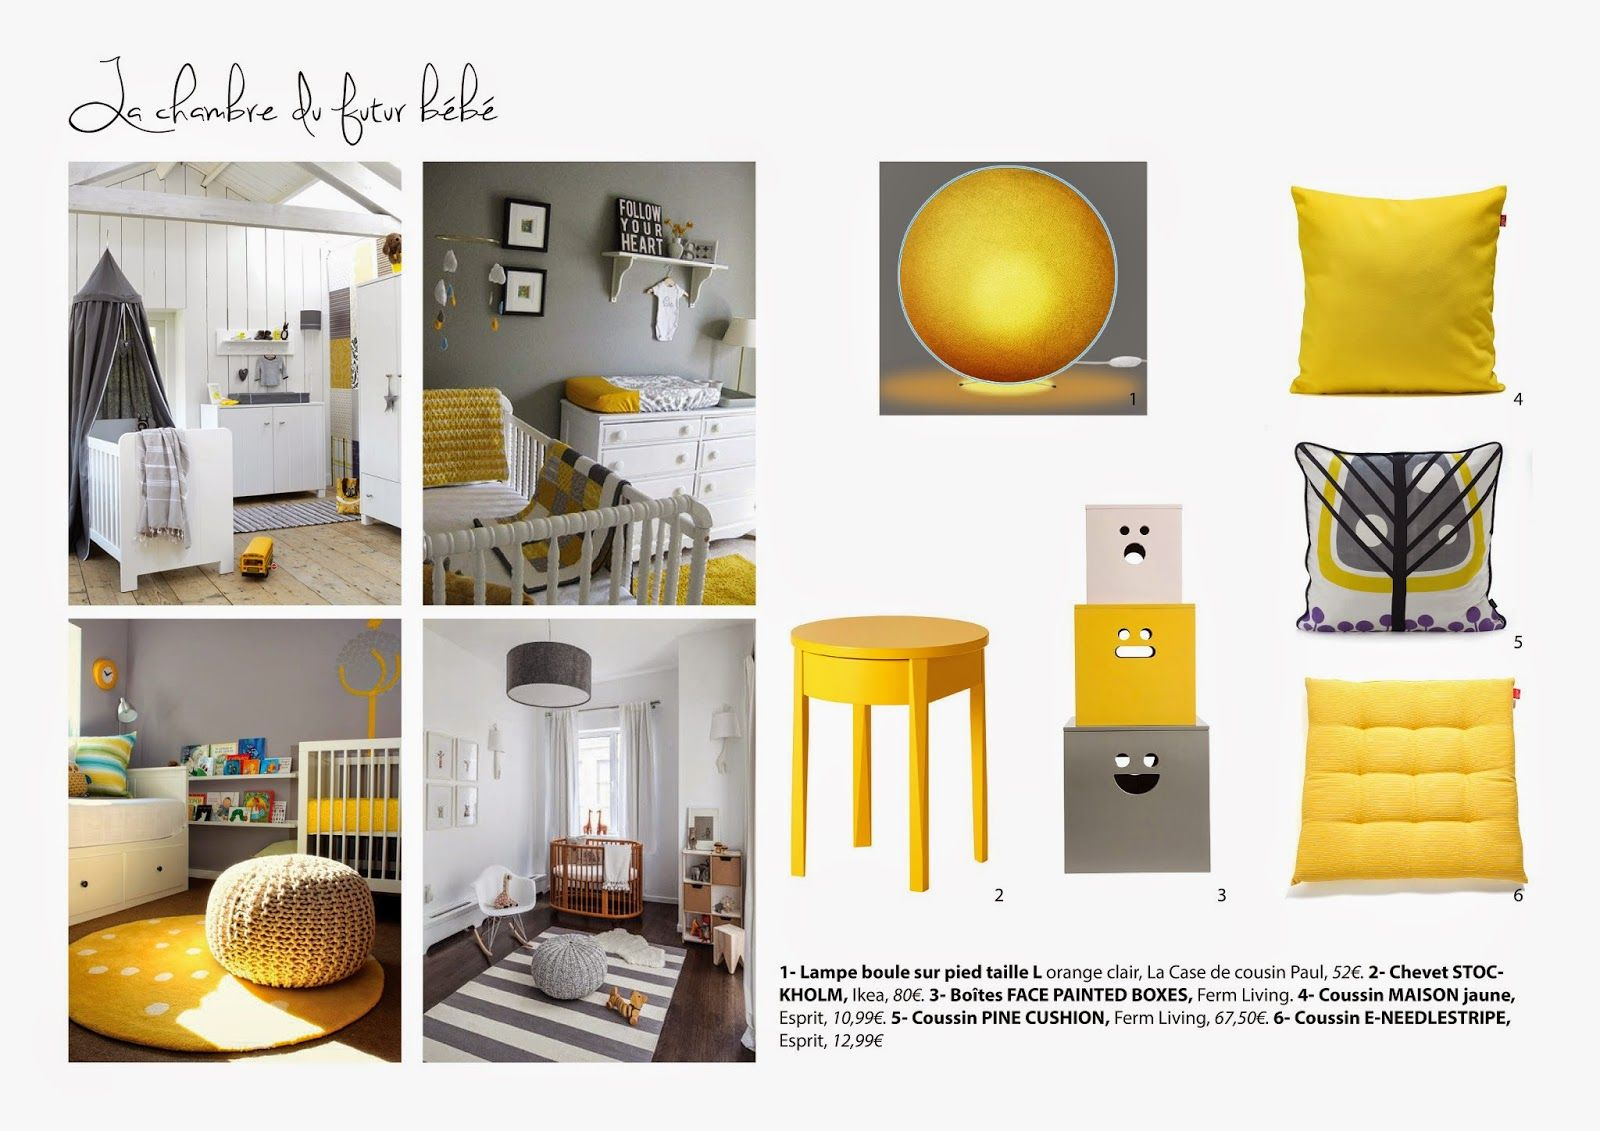 planche tendance chambre enfant jaune et grise planches tendance pinterest planches jaune. Black Bedroom Furniture Sets. Home Design Ideas